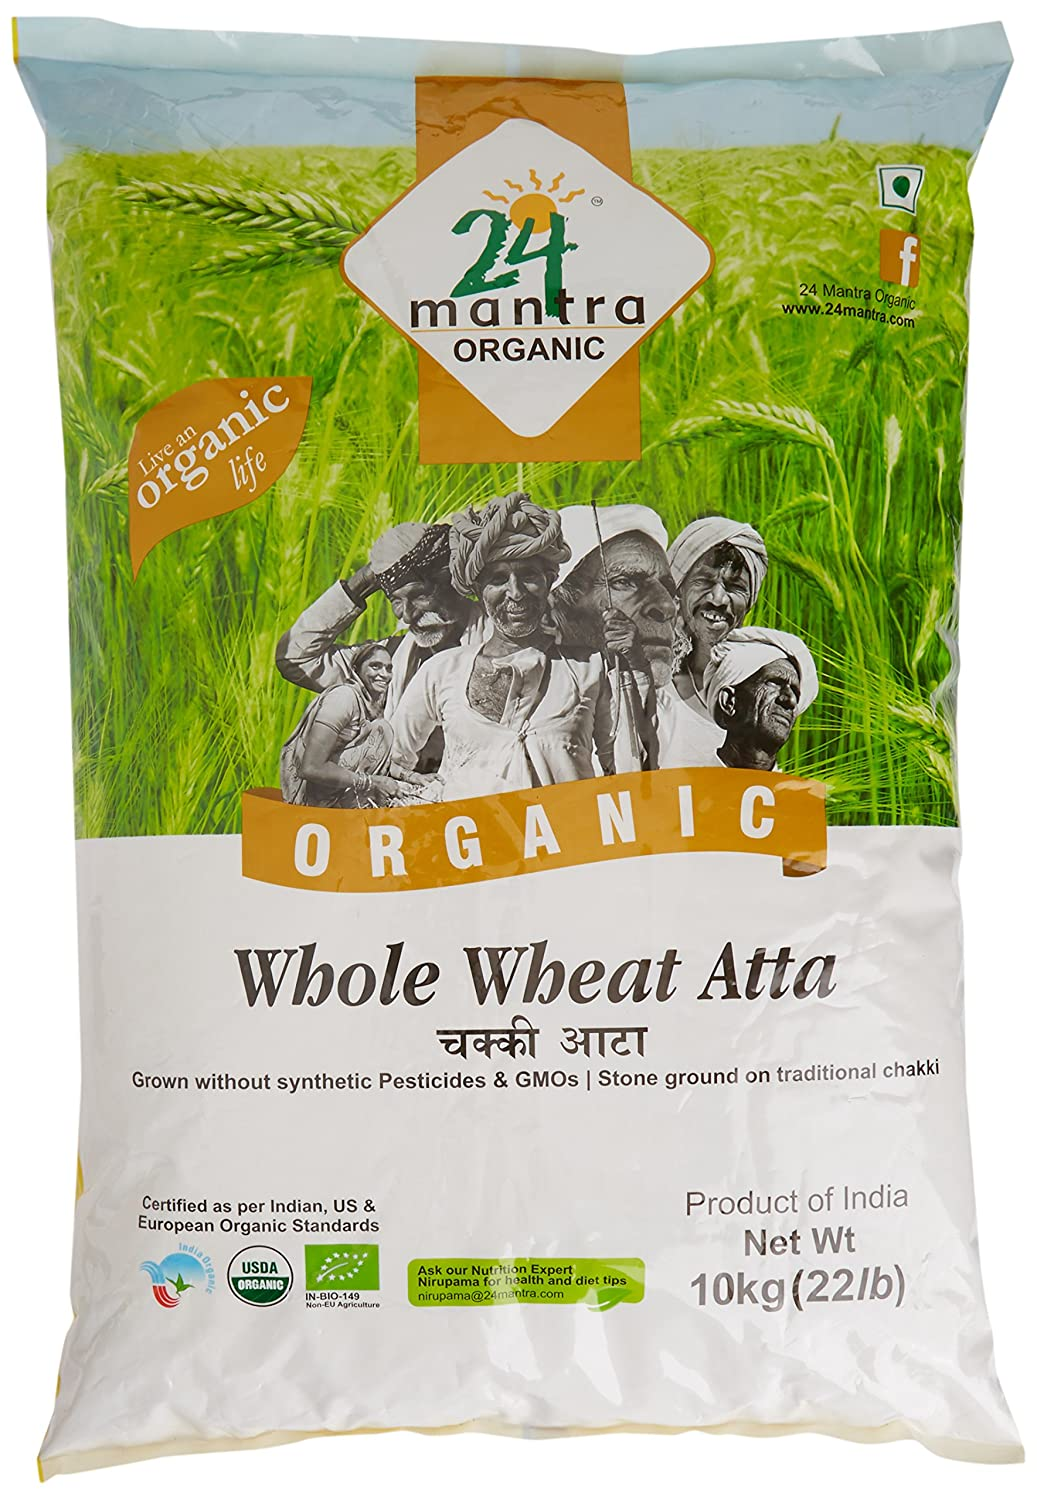 24 Mantra Organic Whole Wheat Premium Atta, 10kg